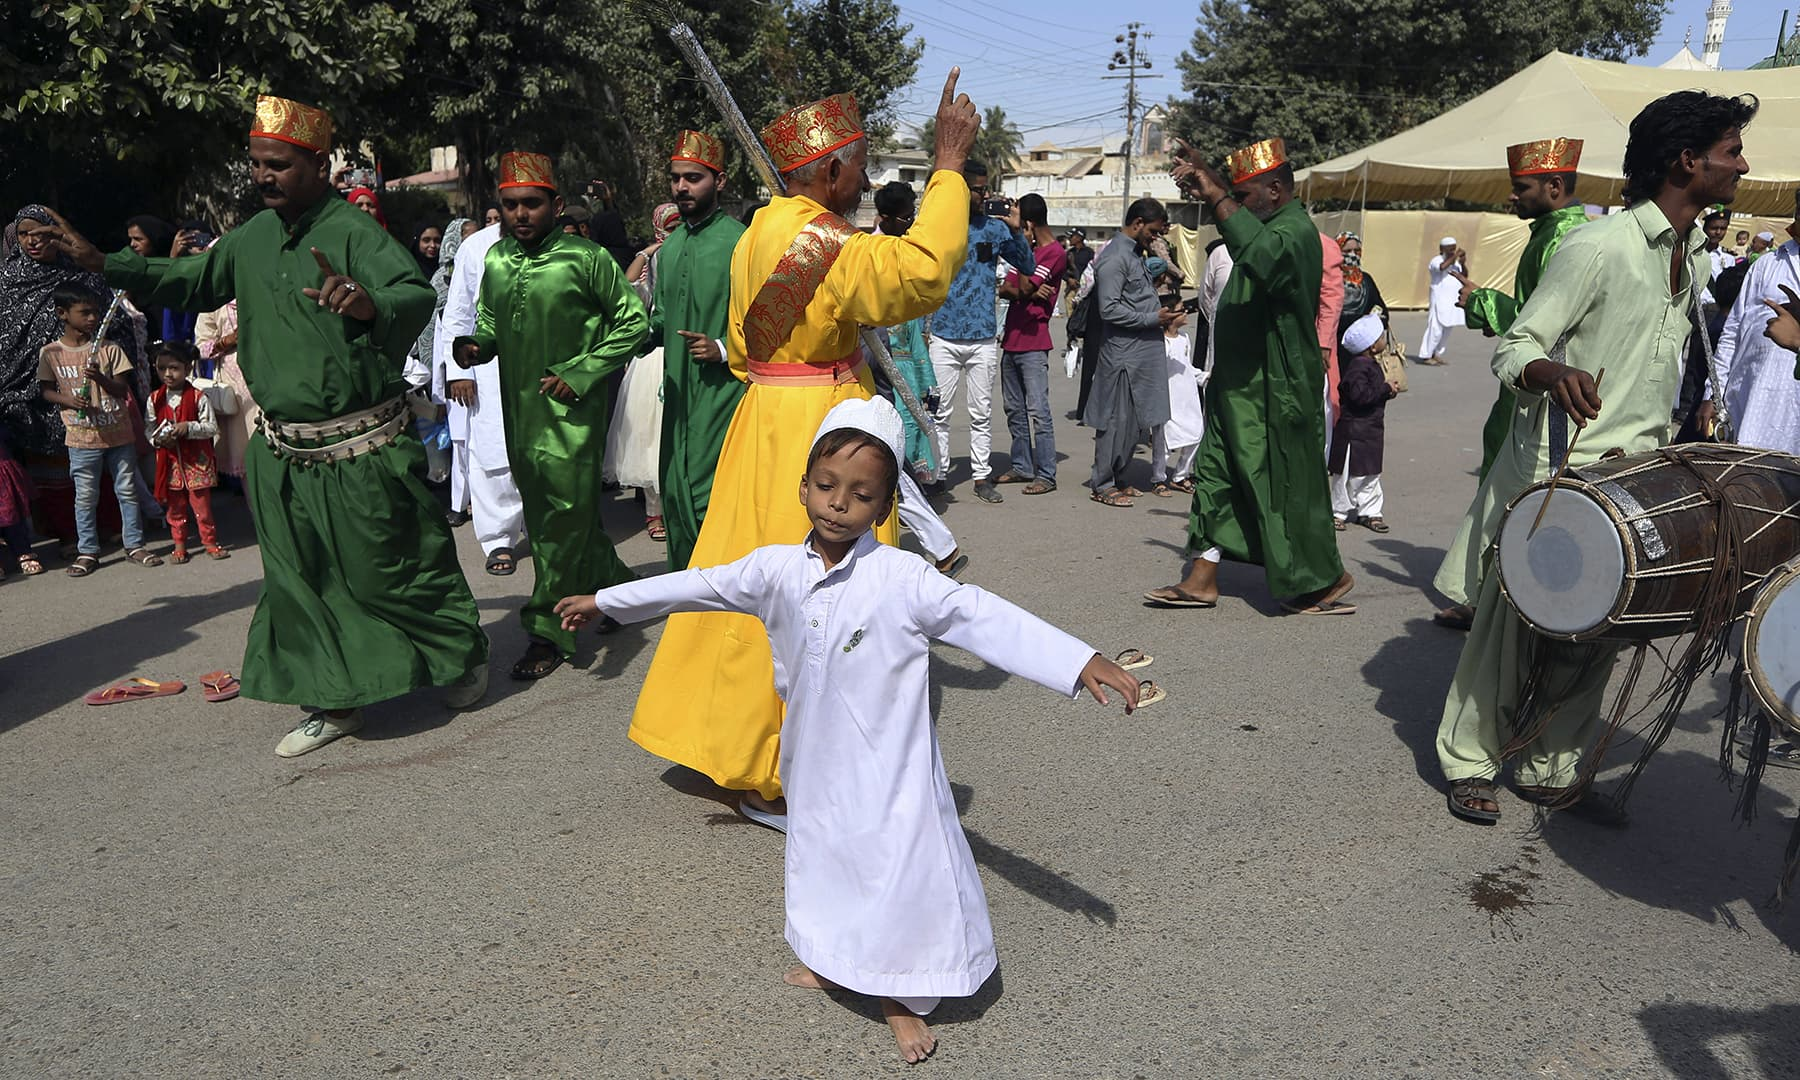 A boy performs a traditional dance with others during a rally to celebrate Eid-i-Miladun Nabi in Karachi, on Sunday. — AP